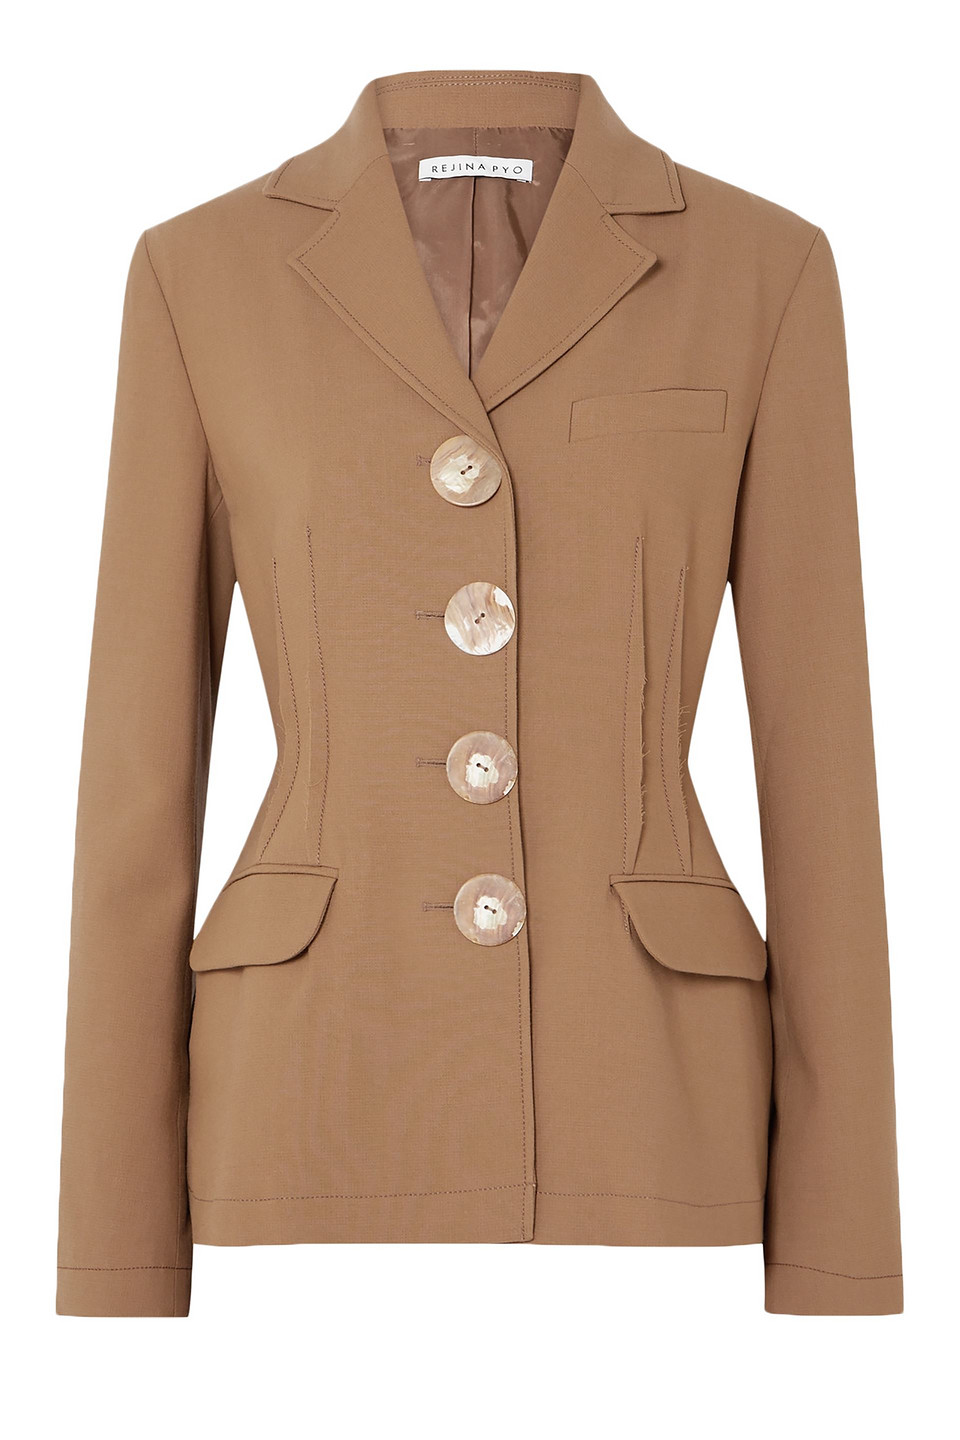 Rejina Pyo | Rejina Pyo Woman Etta Button-detailed Wool-twill Blazer Light Brown | Clouty